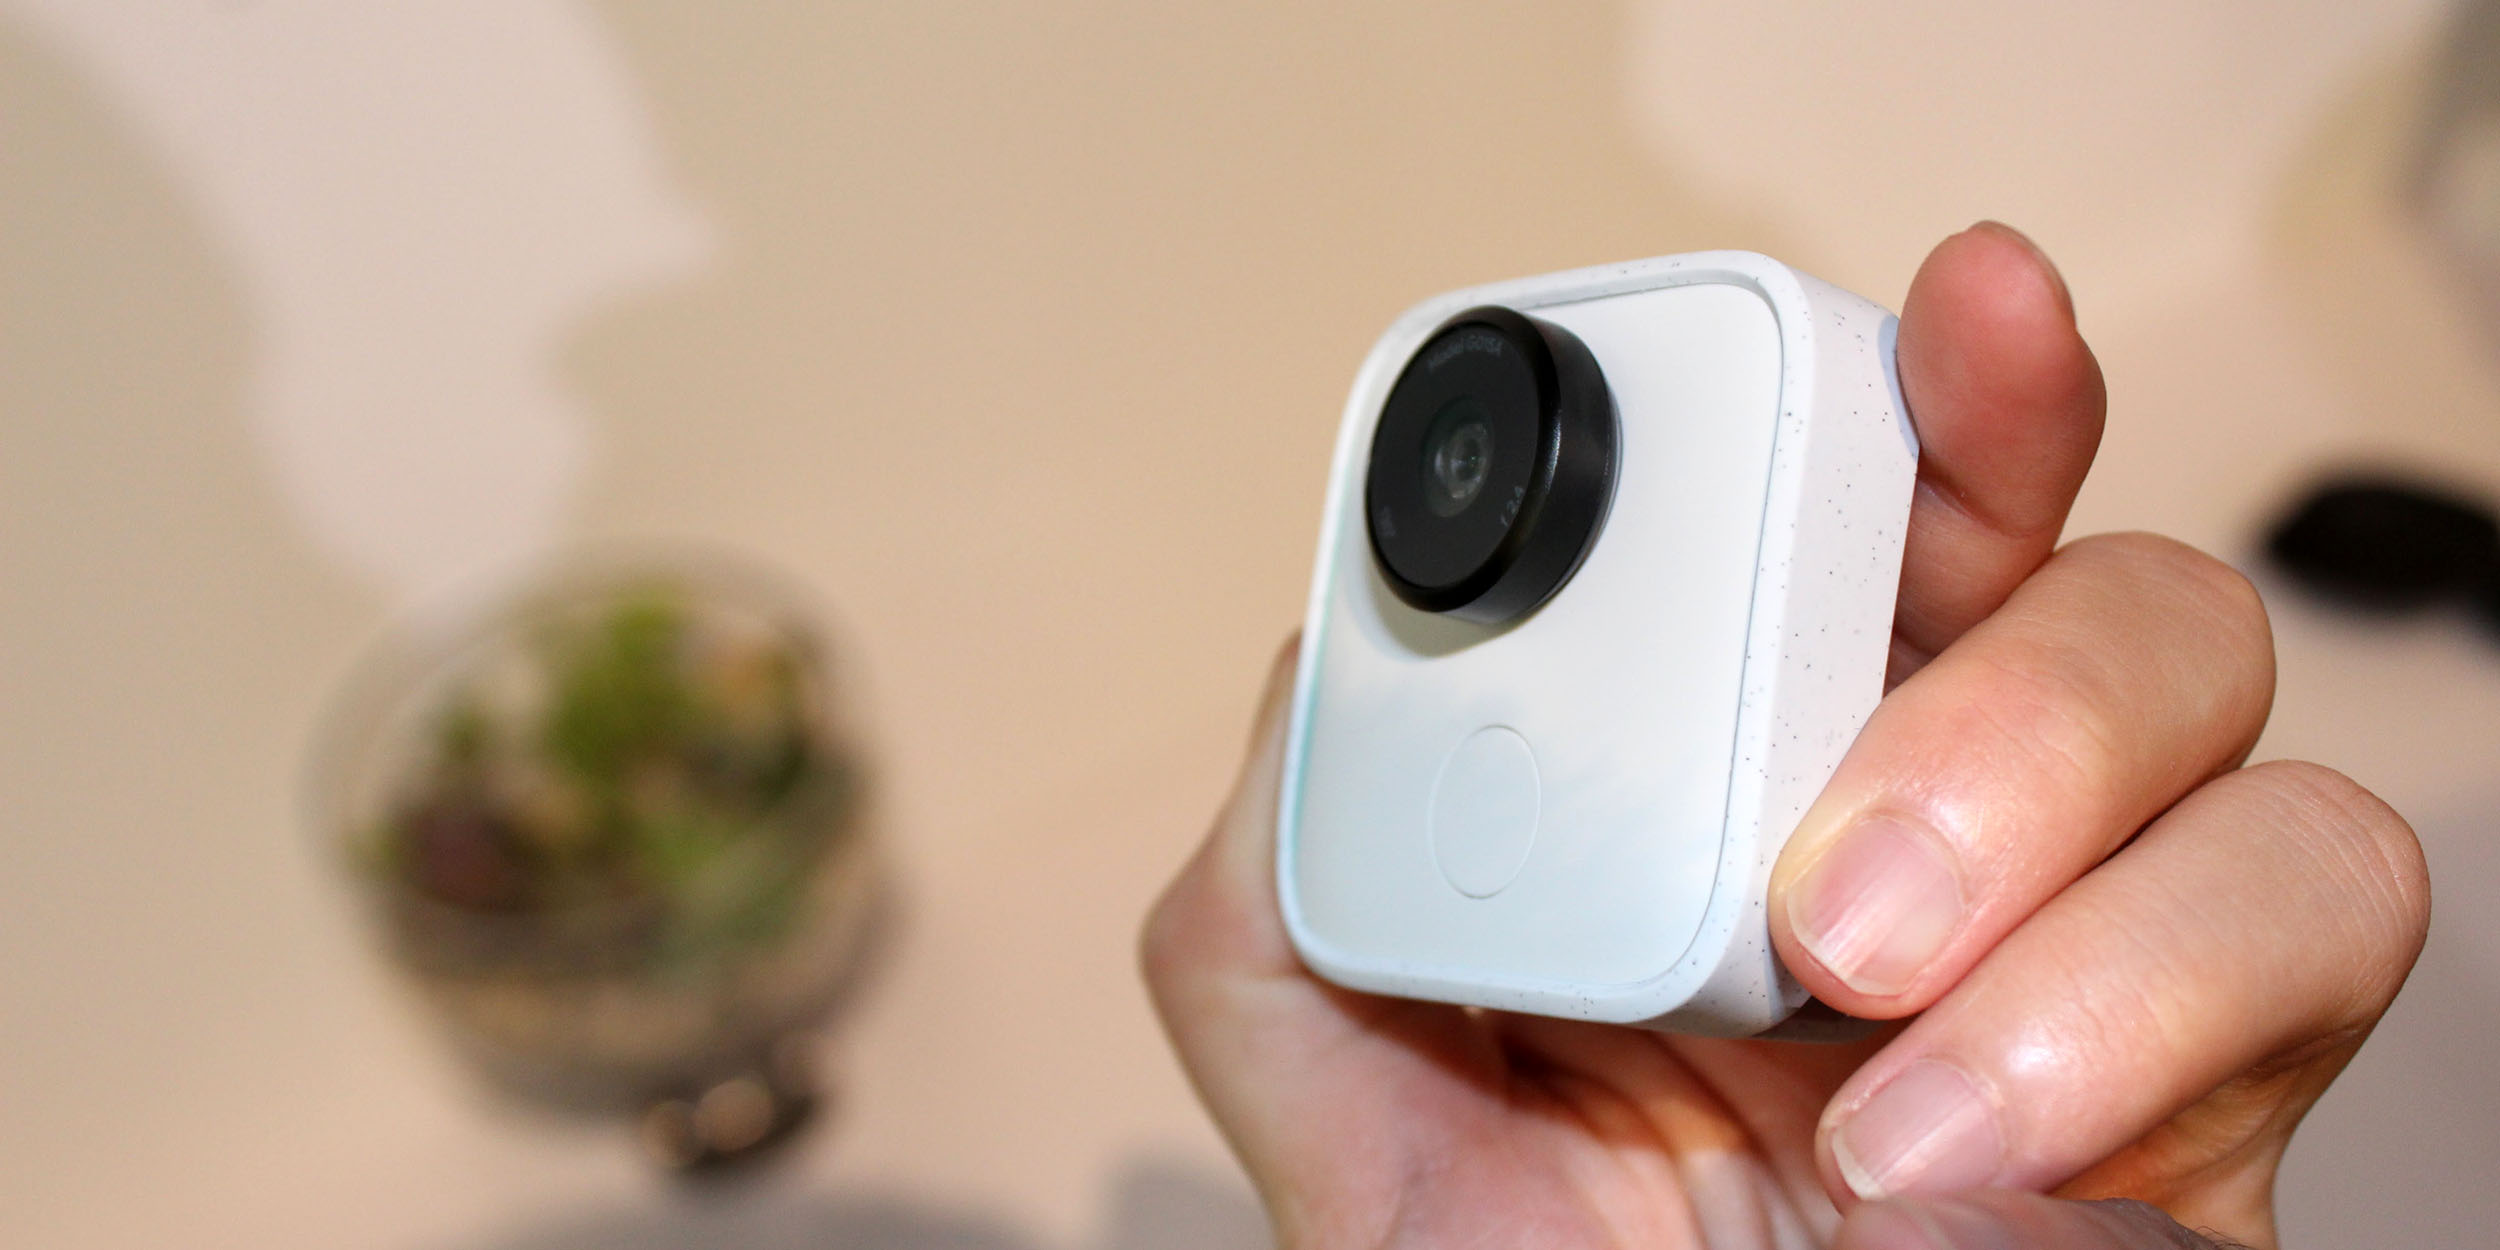 Intel's impressive 'visual processing unit' powers the on-device machine learning in Google Clips